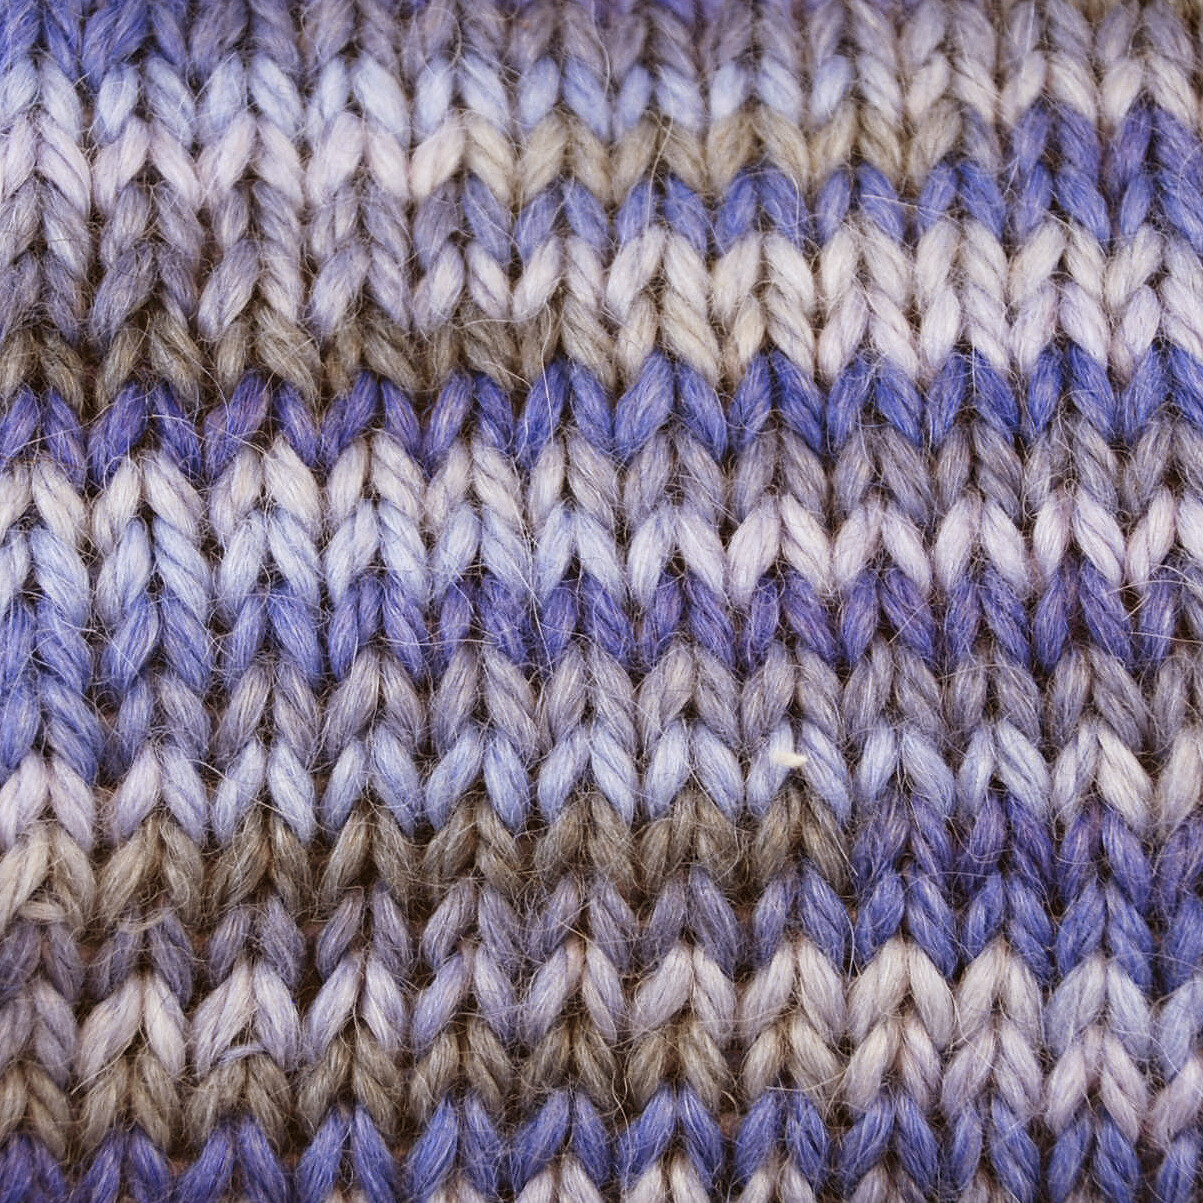 Snuggle Yarn - A Pack of Purples